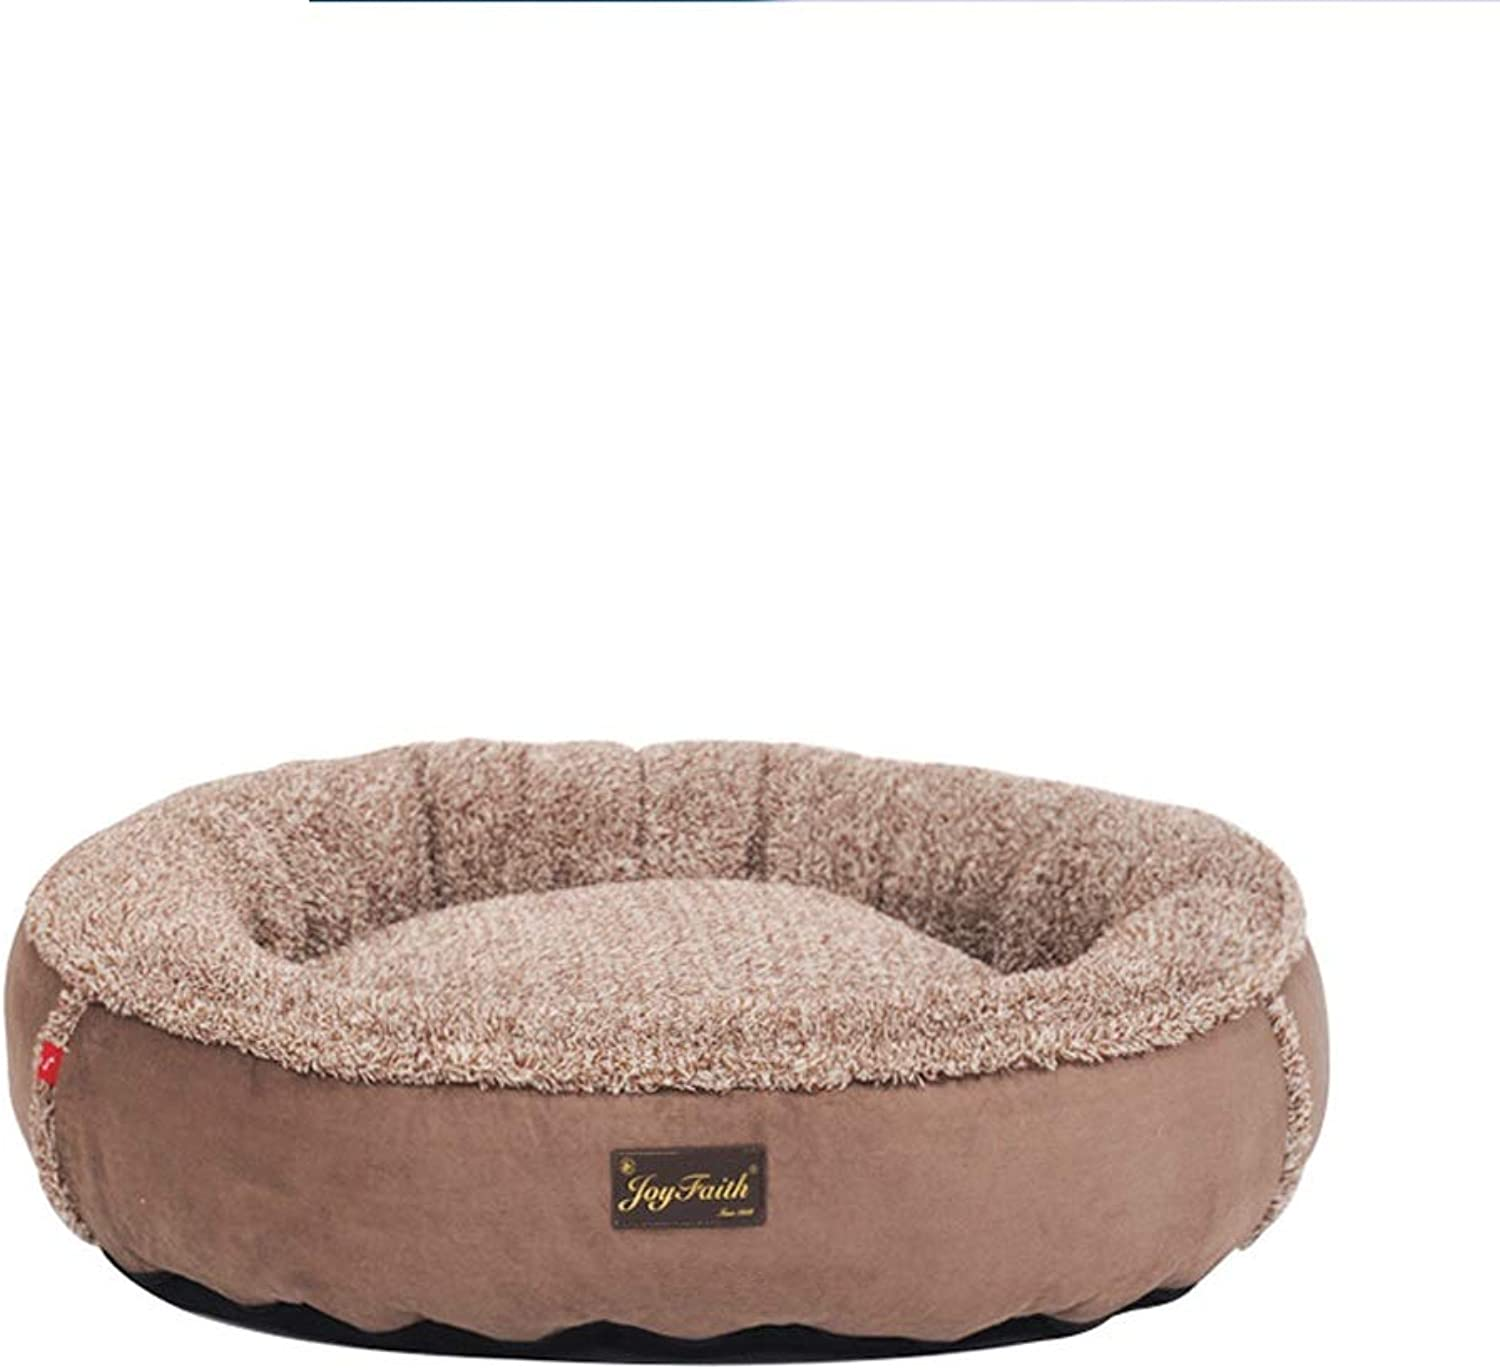 Puppy Nest Pet Small Dog Supplies Cat Nest Available For Four Seasons, Warm Winter, Brown SMBYLL